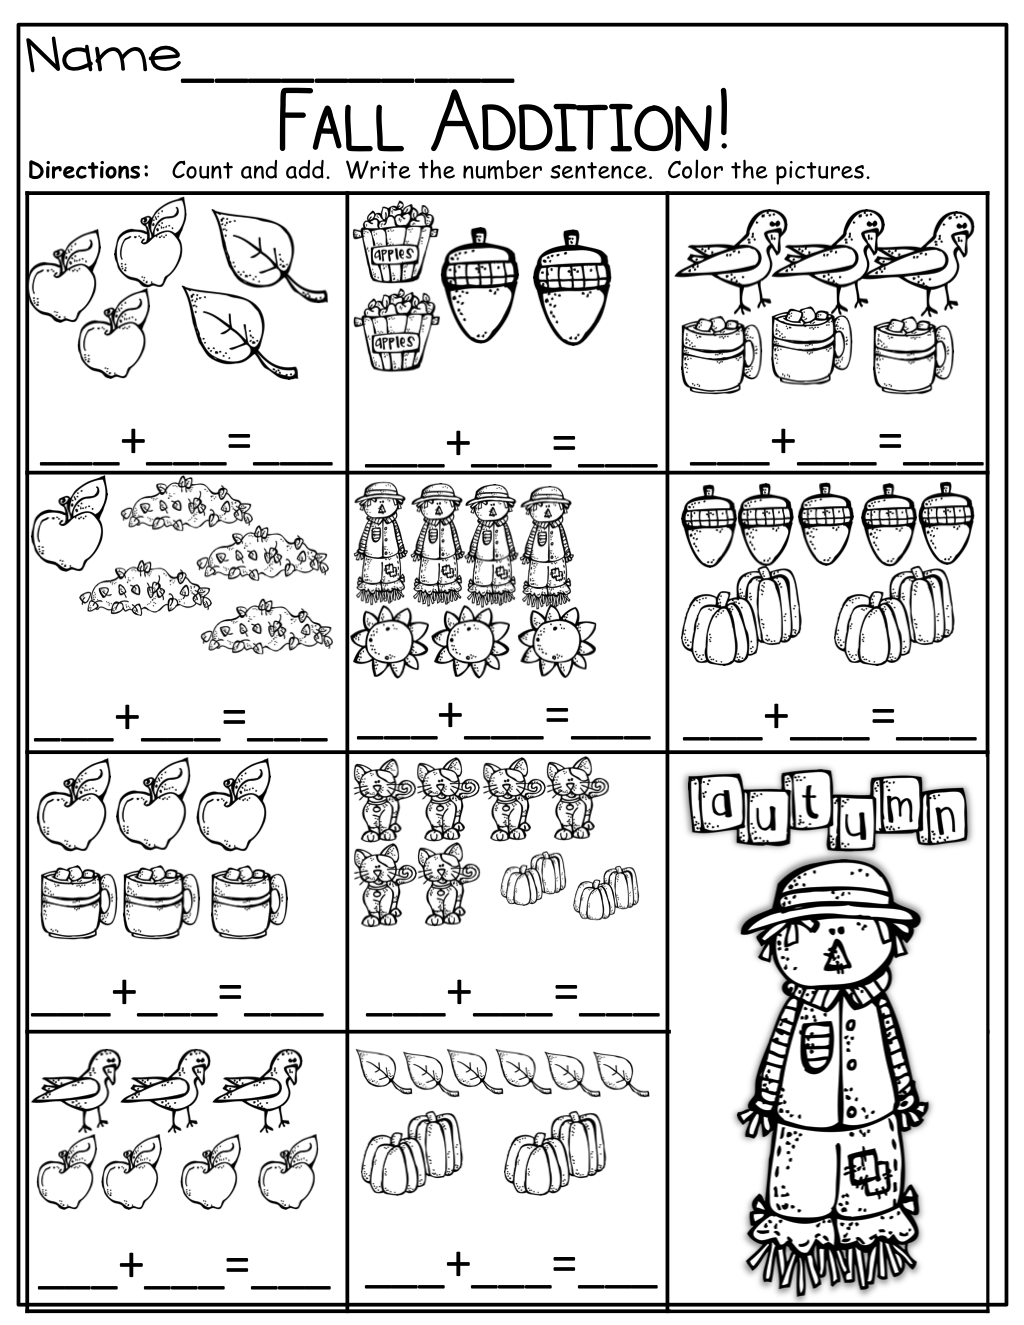 Addition Worksheets thanksgiving addition worksheets : Simple Addition sentences for fall! | Math | Pinterest | Simple ...